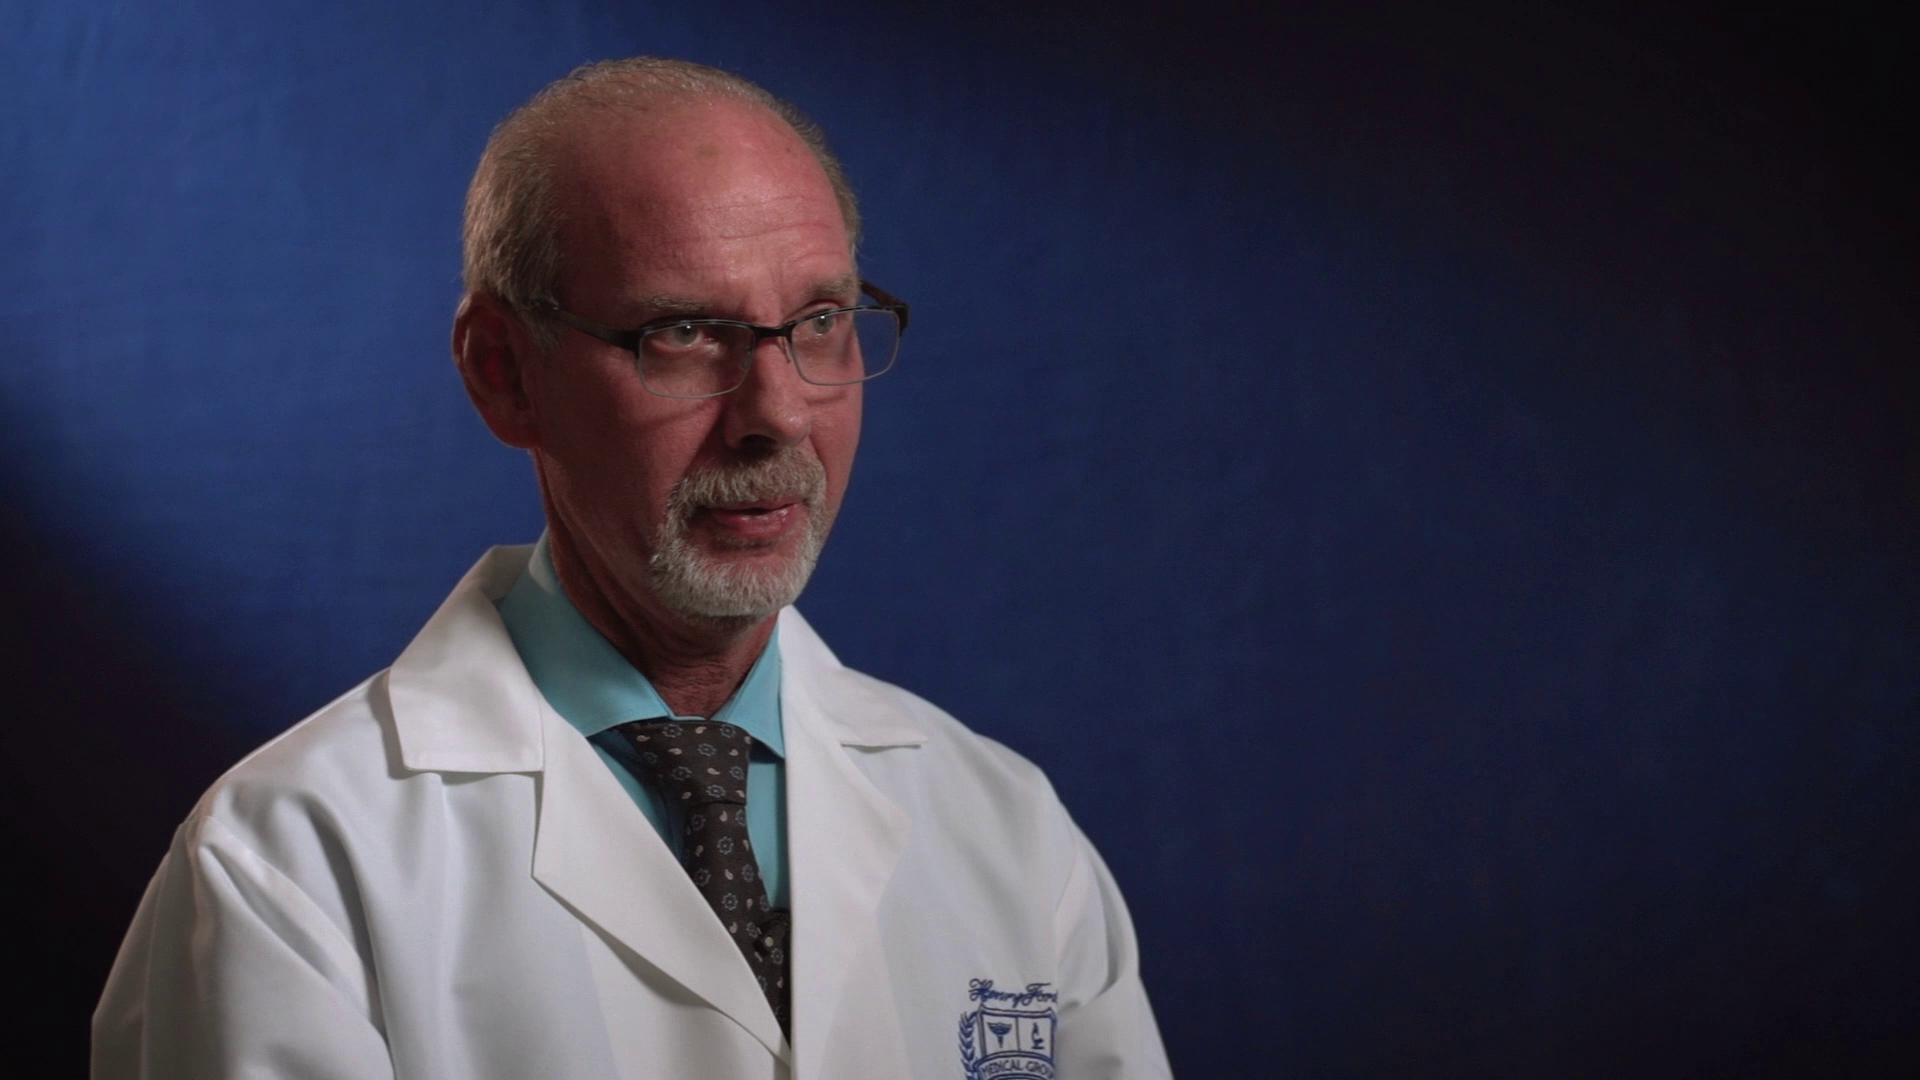 Dr. Orr talks about his practice